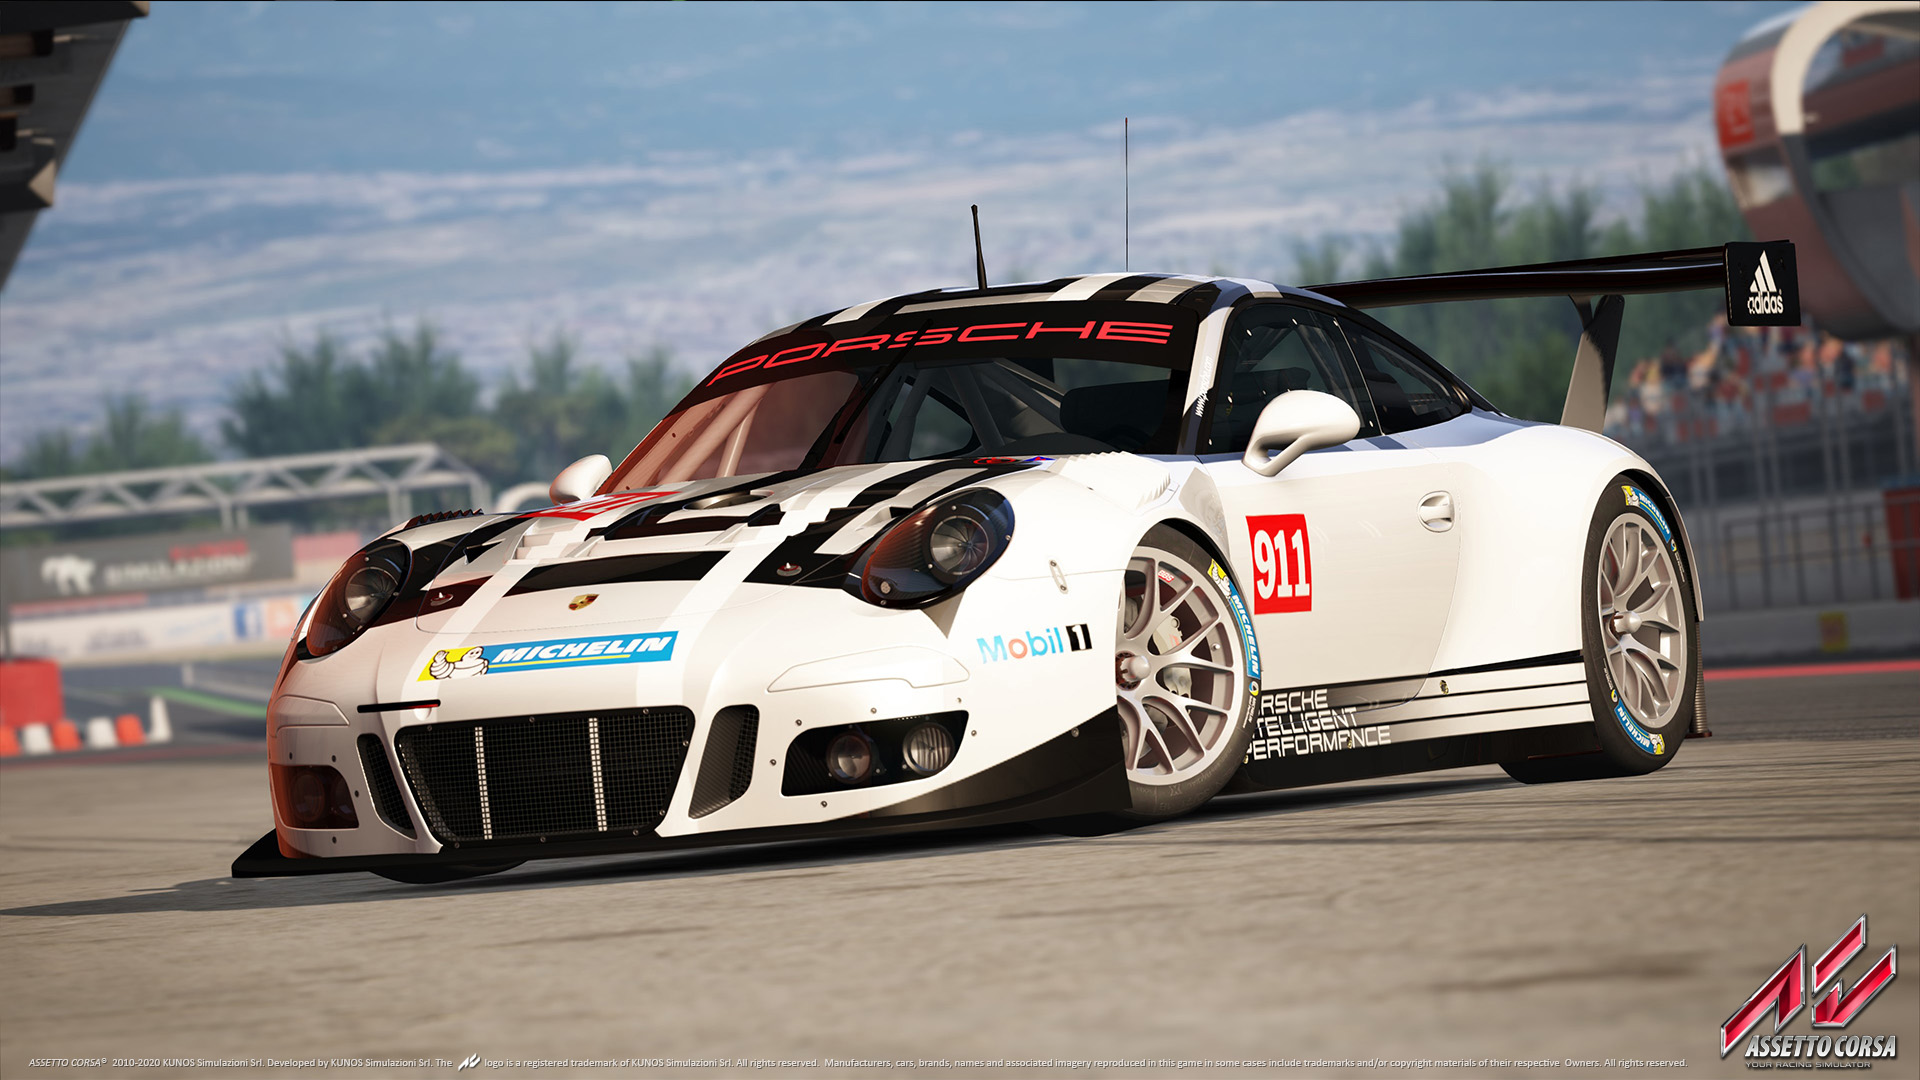 assetto corsa updated for playstation 4 porsche. Black Bedroom Furniture Sets. Home Design Ideas